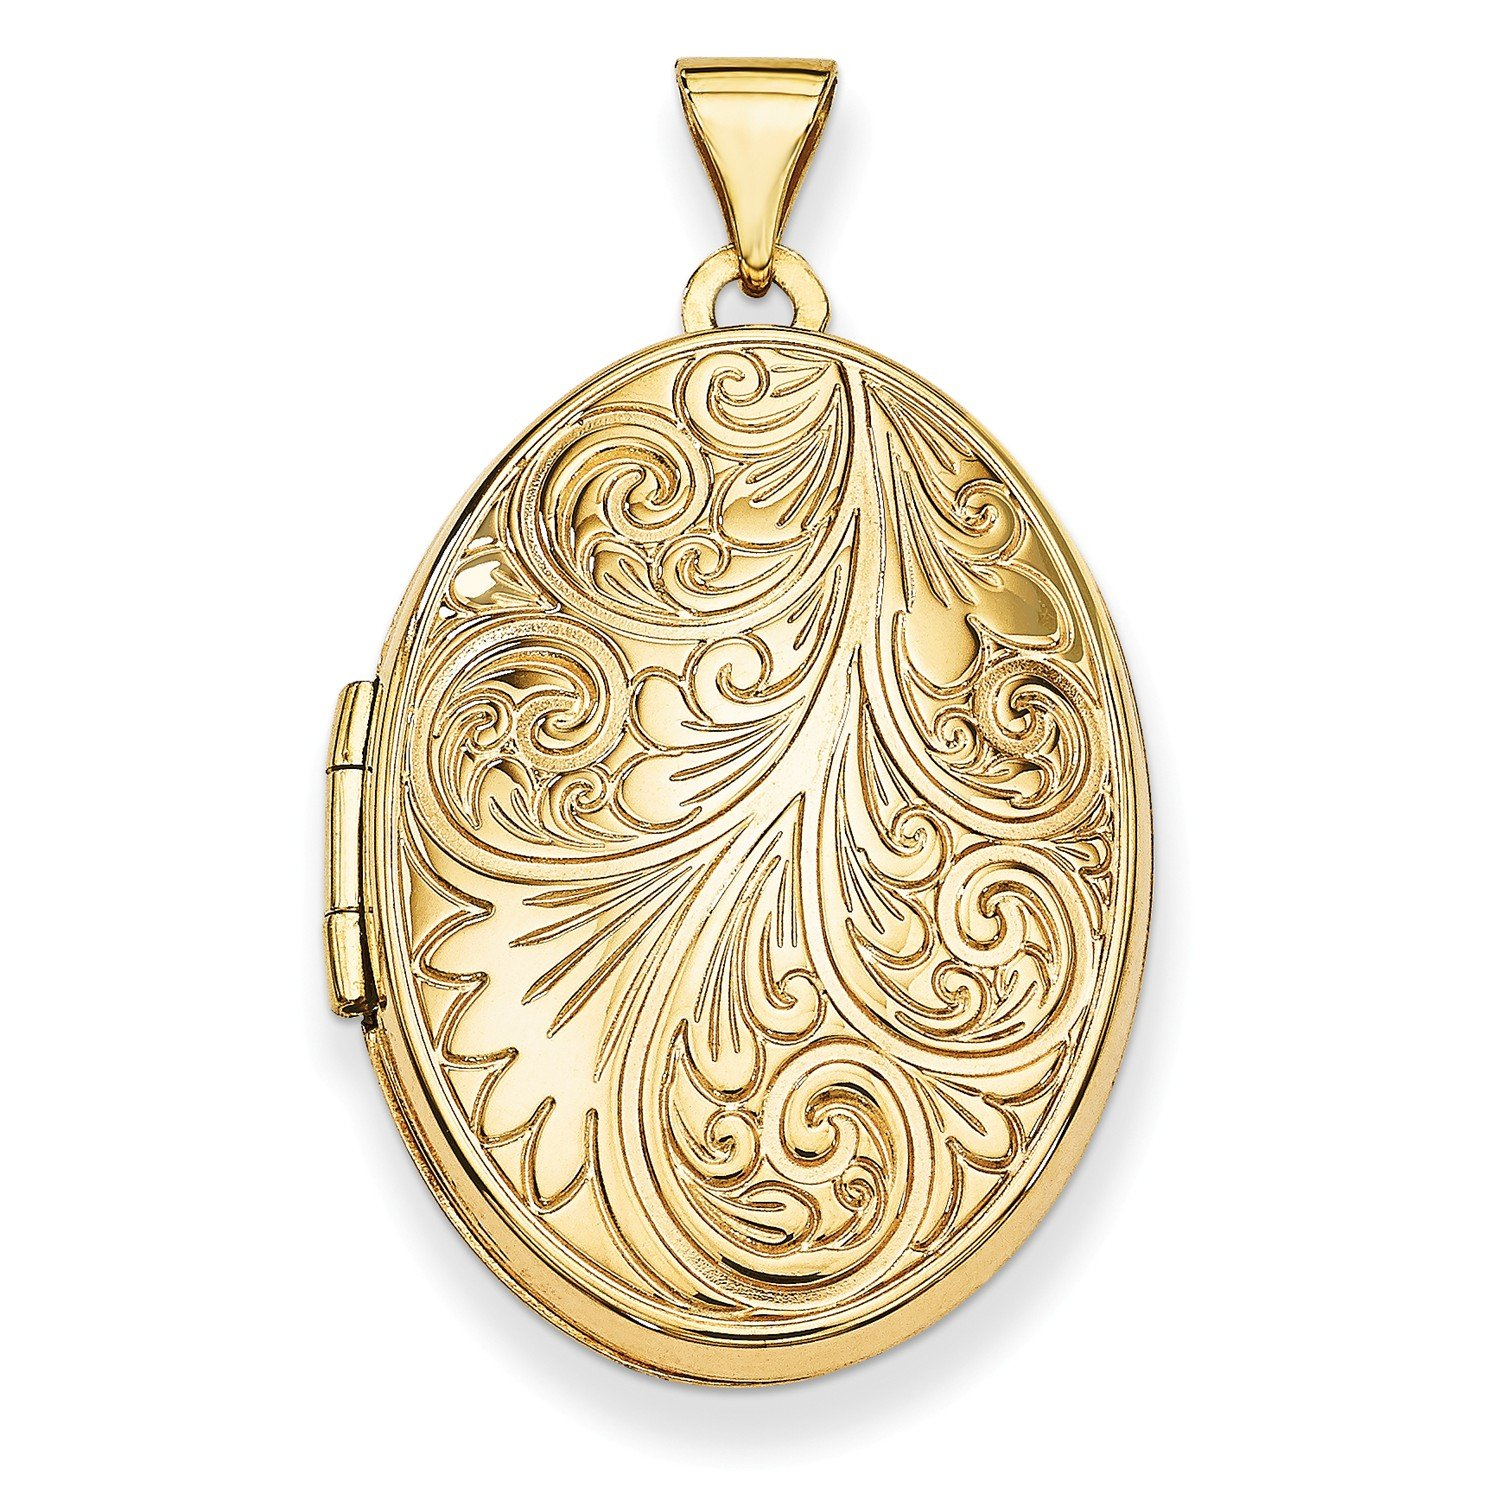 Roy Rose Jewelry 14K Yellow Gold Scroll Oval Locket 34x26mm by Roy Rose Jewelry (Image #1)